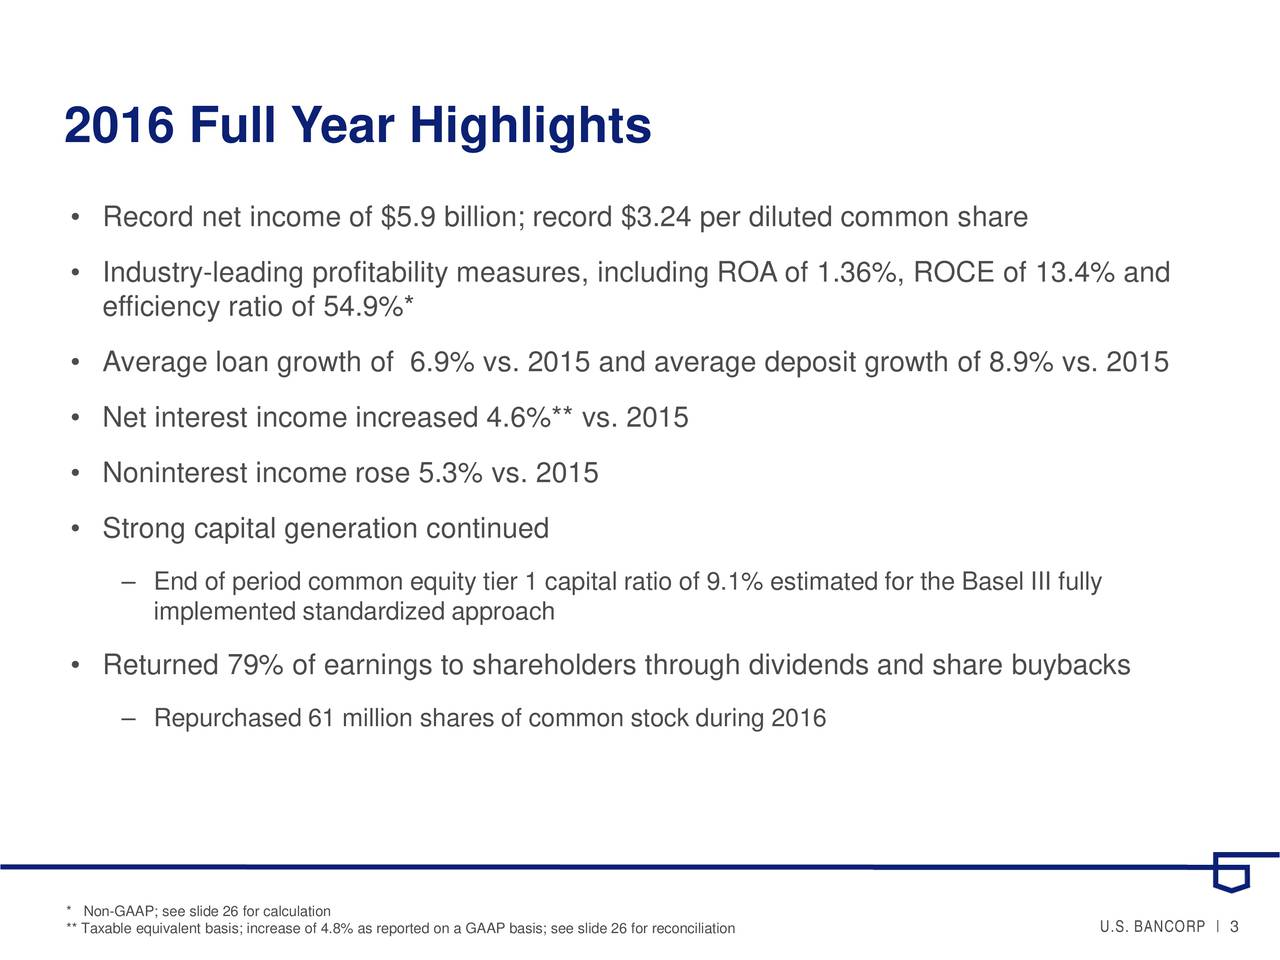 Record net income of $5.9 billion; record $3.24 per diluted common share Industry-leading profitability measures, including ROA of 1.36%, ROCE of 13.4% and efficiency ratio of 54.9%* Average loan growth of 6.9% vs. 2015 and average deposit growth of 8.9% vs. 2015 Net interest income increased 4.6%** vs. 2015 Noninterest income rose 5.3% vs. 2015 Strong capital generation continued End of period common equity tier 1 capital ratio of 9.1% estimated for the Basel III fully implemented standardized approach Returned 79% of earnings to shareholders through dividends and share buybacks Repurchased 61 million shares of common stock during2016 * Non-GAAP; see slide 26 for calculation ** Taxable equivalent basis; increase of 4.8% as reported on a GAAP basis; see slide 26 for reconciliation